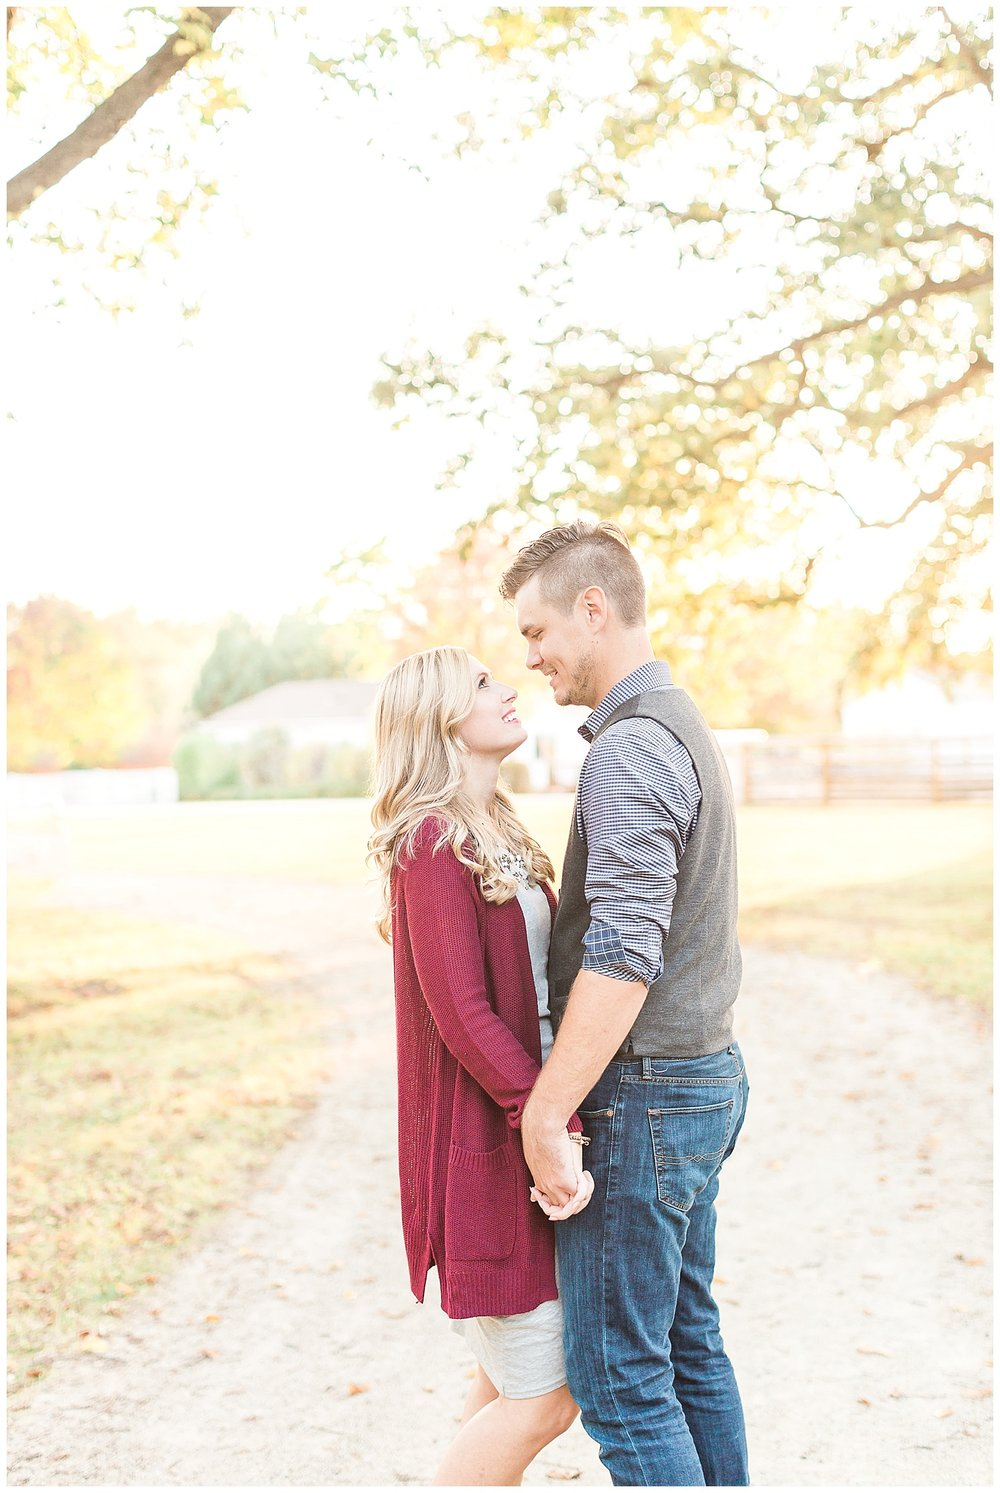 wheaton-wedding-photographer-fall-engagement-romantic.jpgwheaton-wedding-photographer-fall-engagement-romantic.jpg